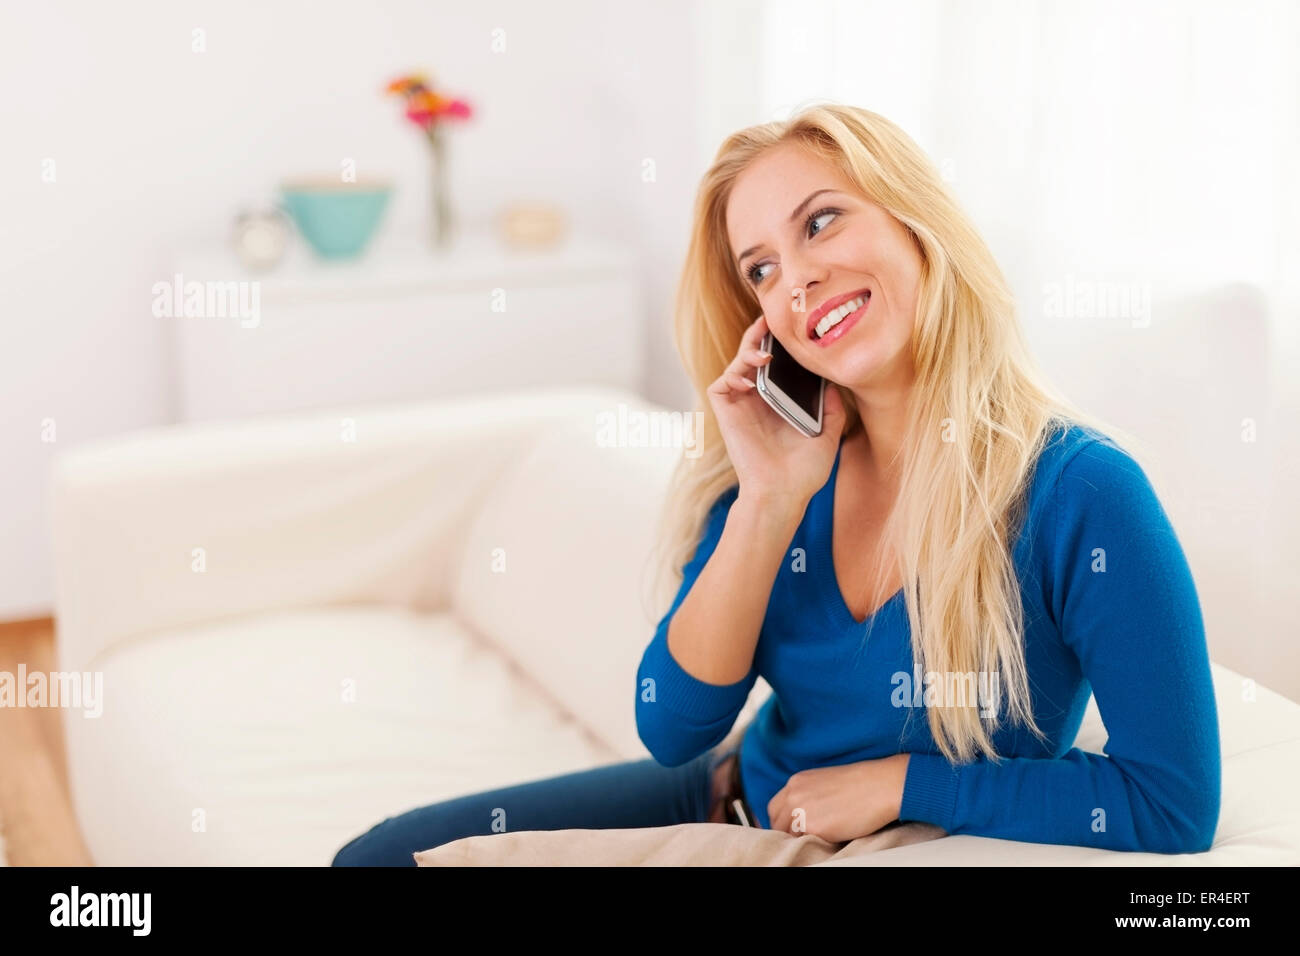 Cute blonde Woman talking on mobile phone at home Photo Stock